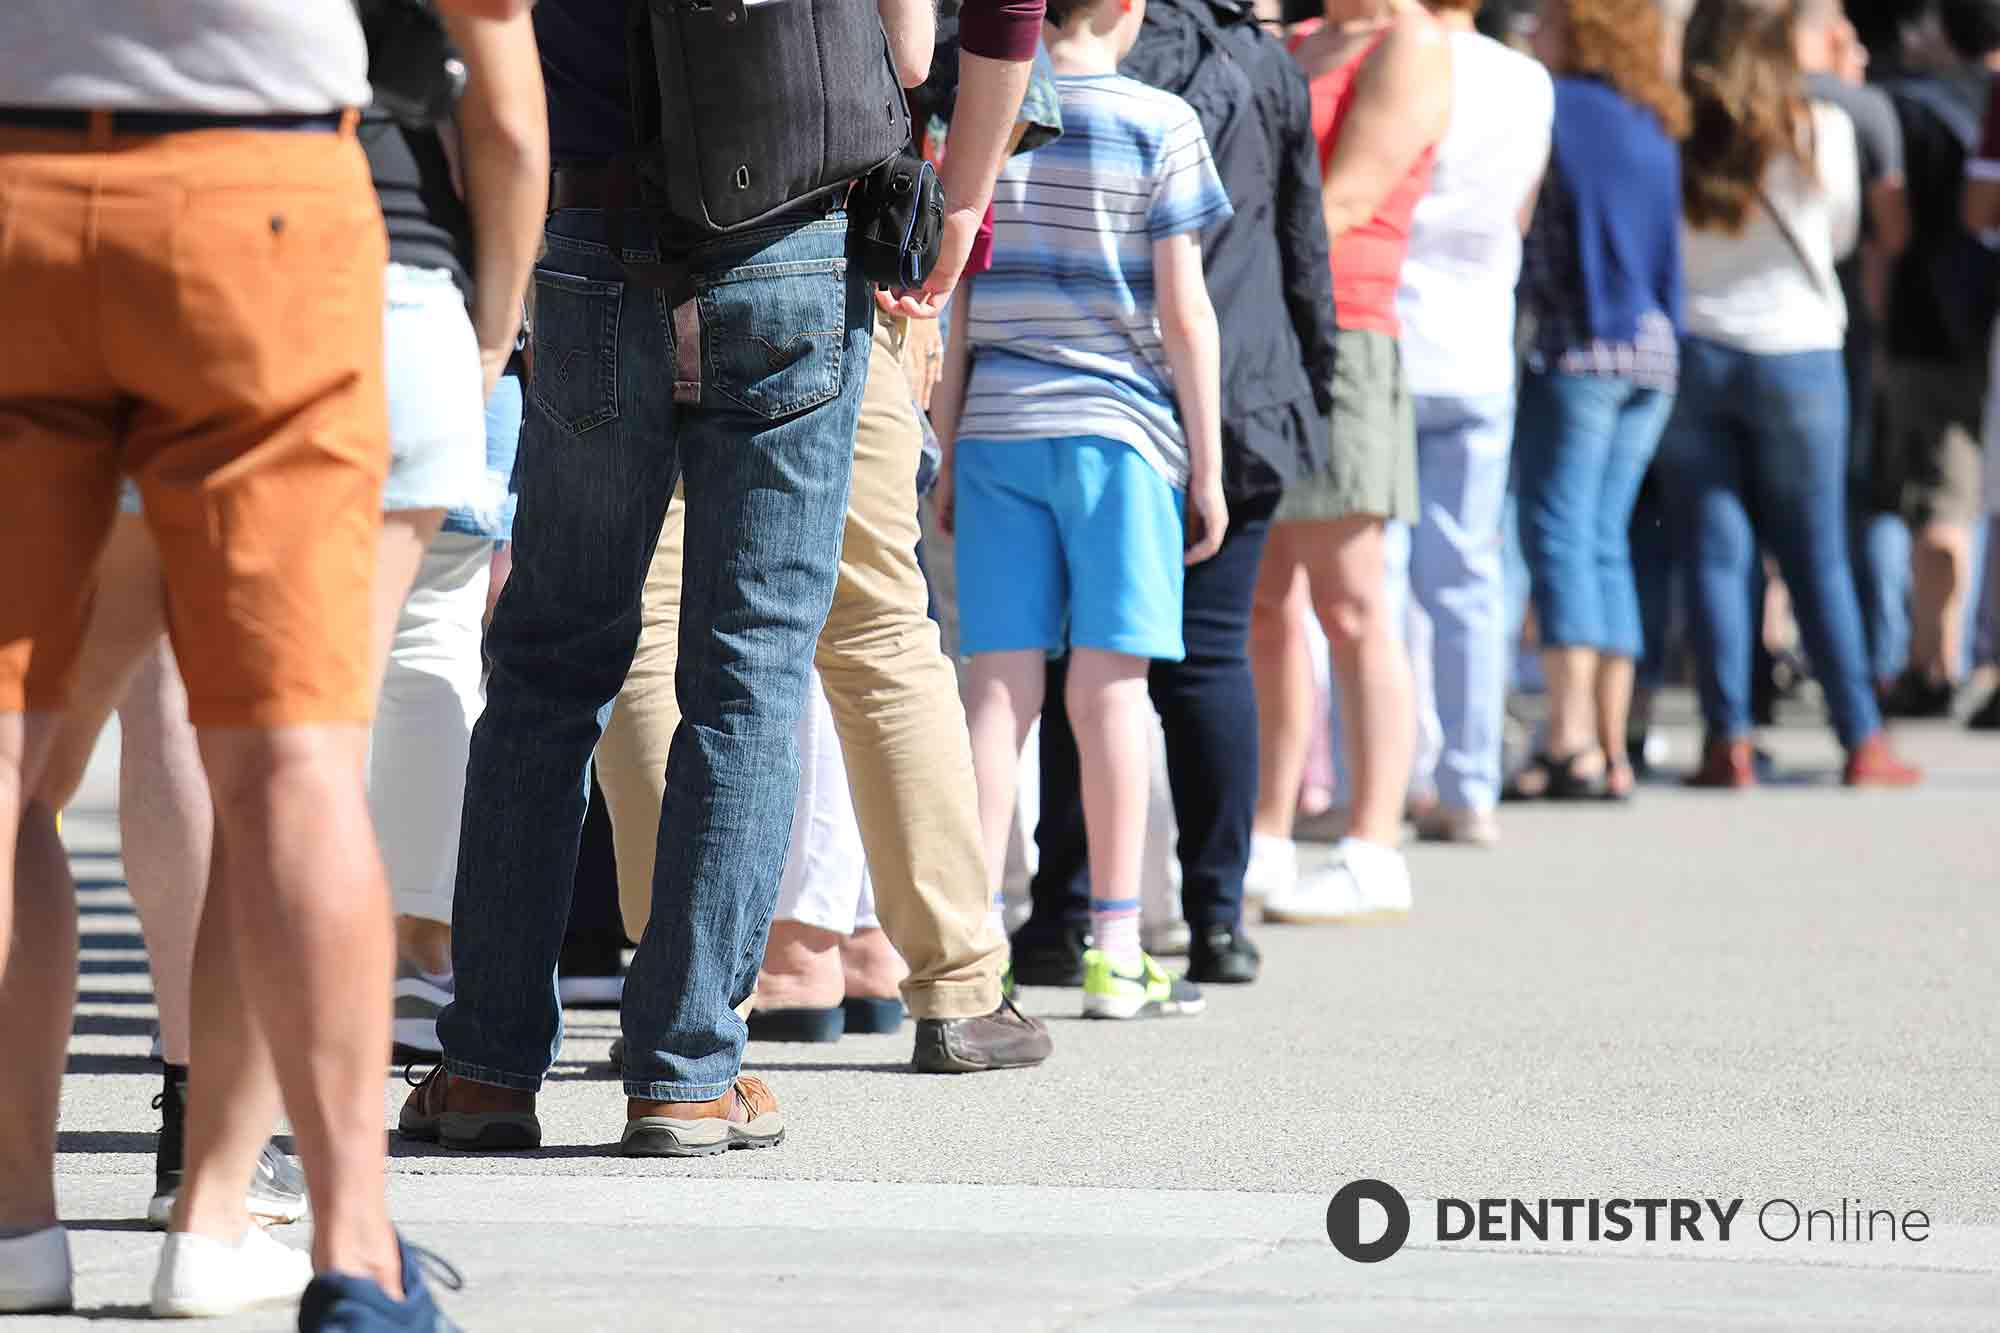 A Member of Parliament has warned of the 'frightening' access troubles plaguing dentistry as the pandemic continues